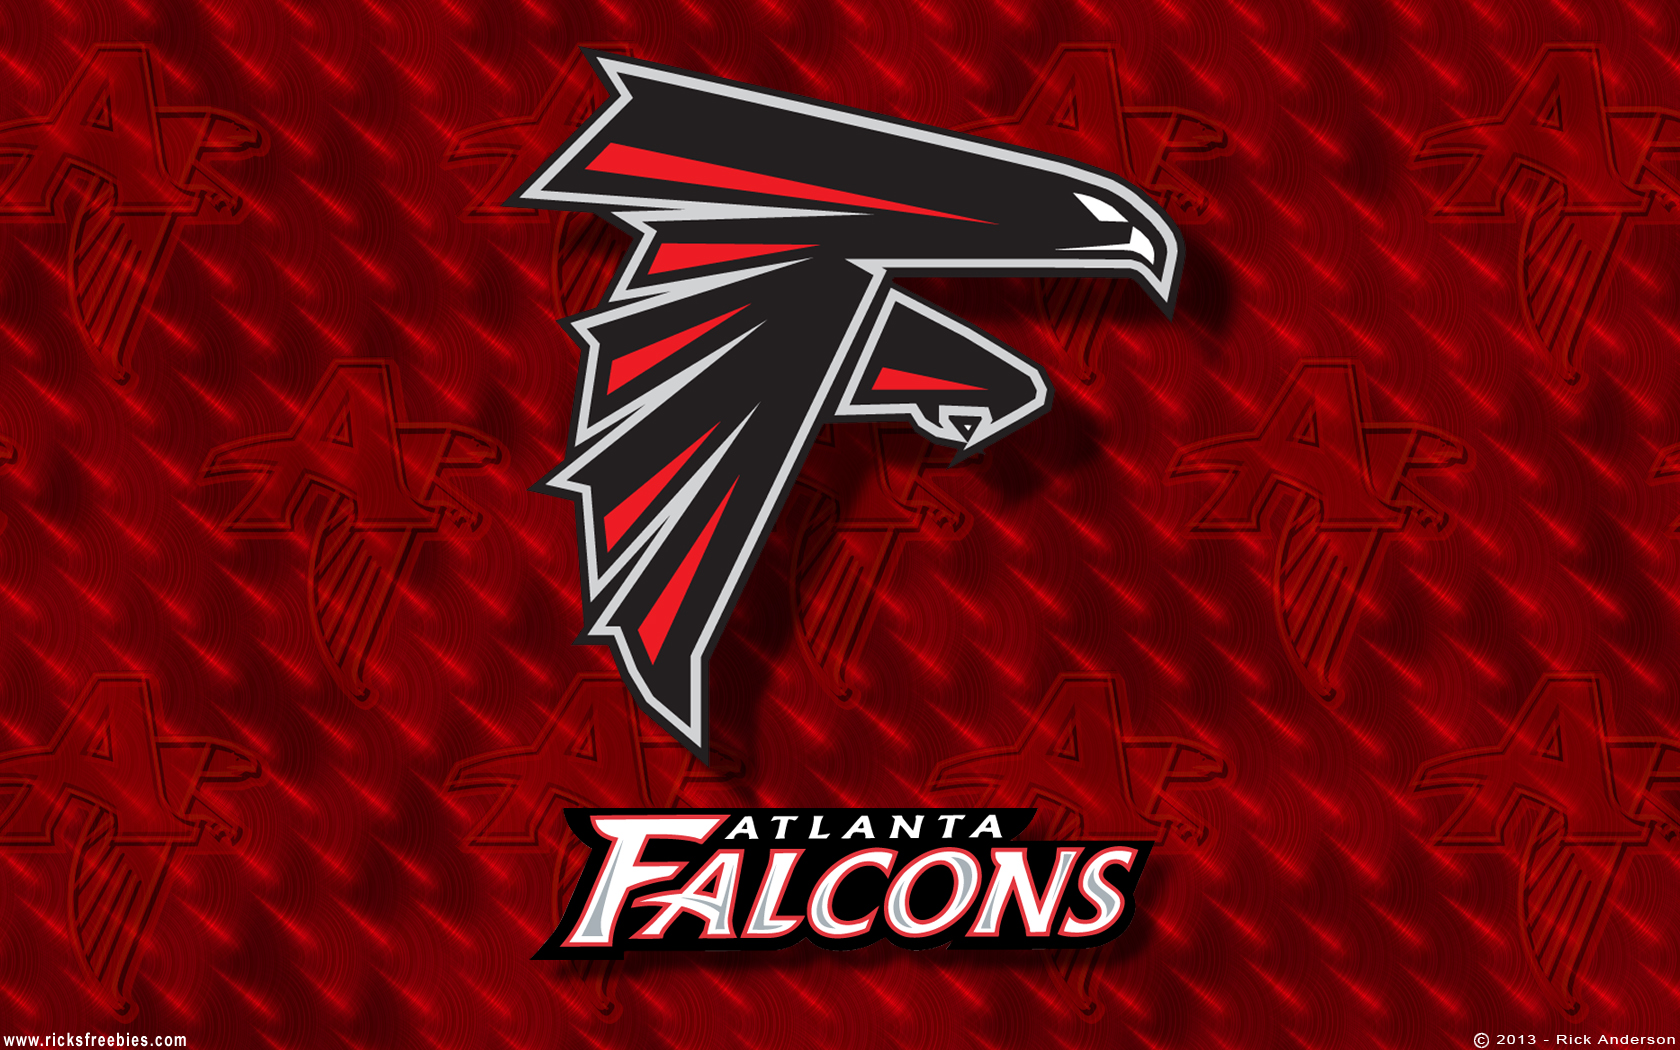 ATLANTA FALCONS Wallpaper | Atlanta Falcons | Pinterest | Seasons